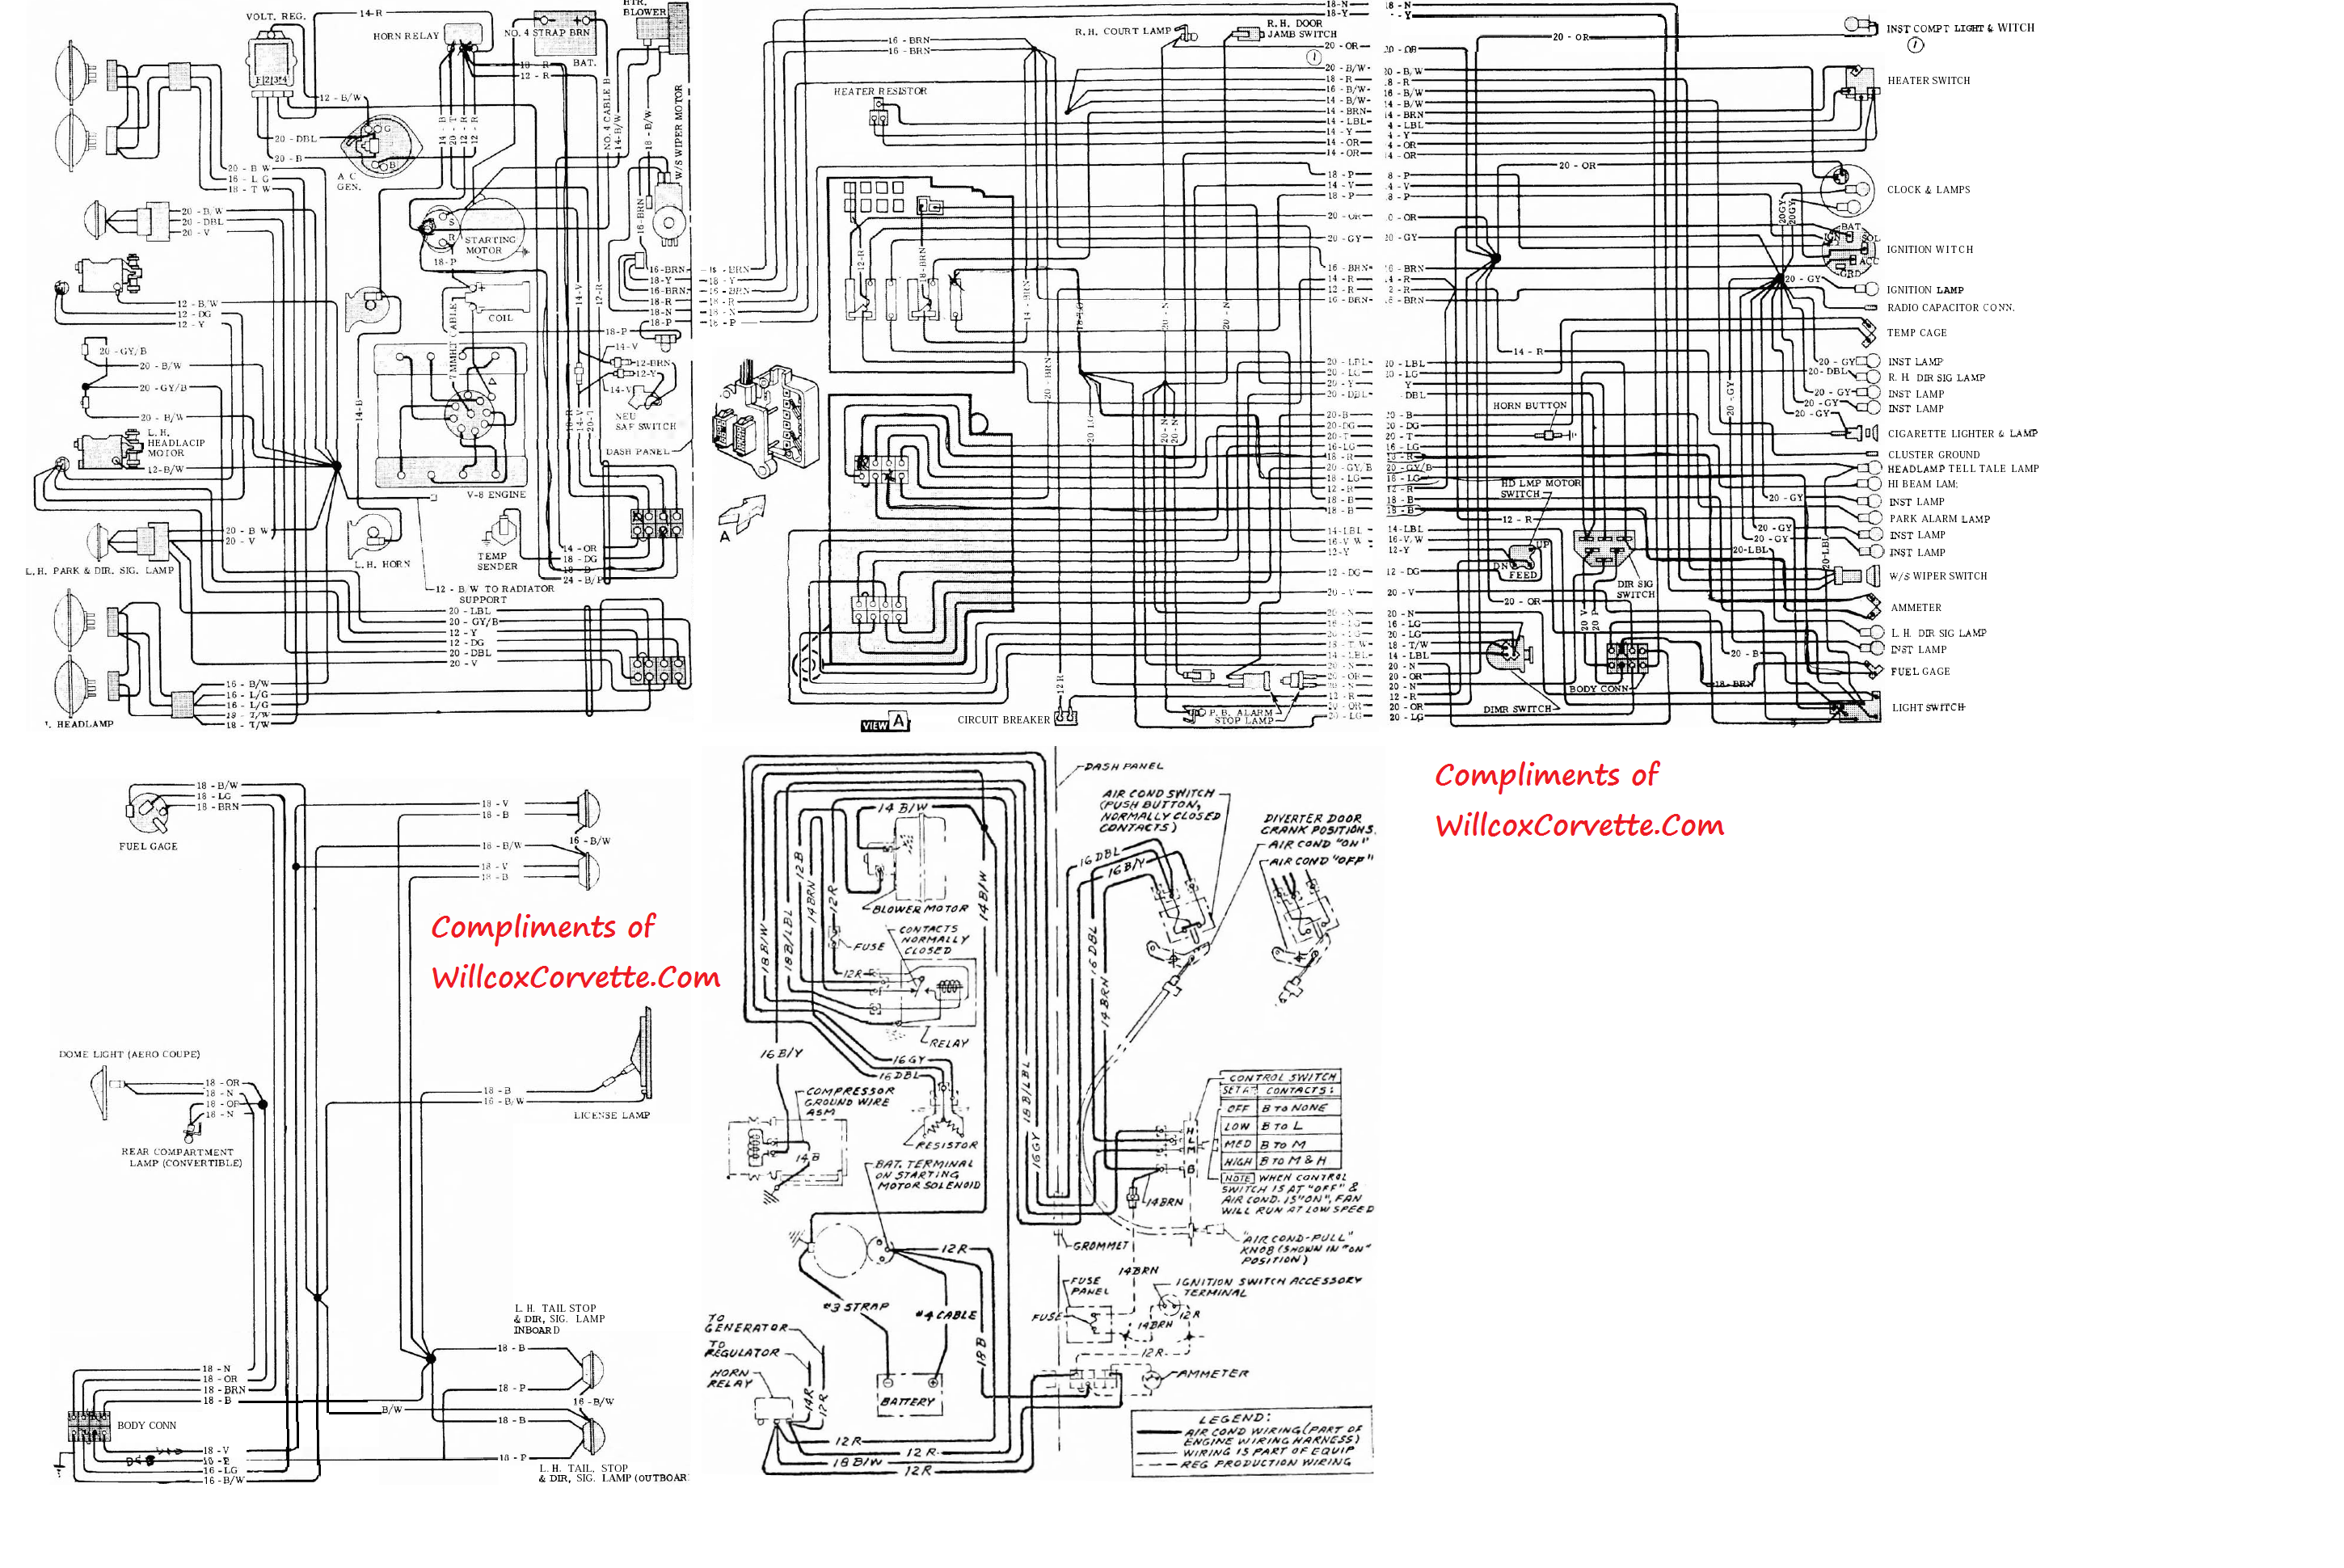 1963 Corvette Tracer Wiring Diagram Tracer Schematic 1980 corvette wiring schematic schematics wiring diagram